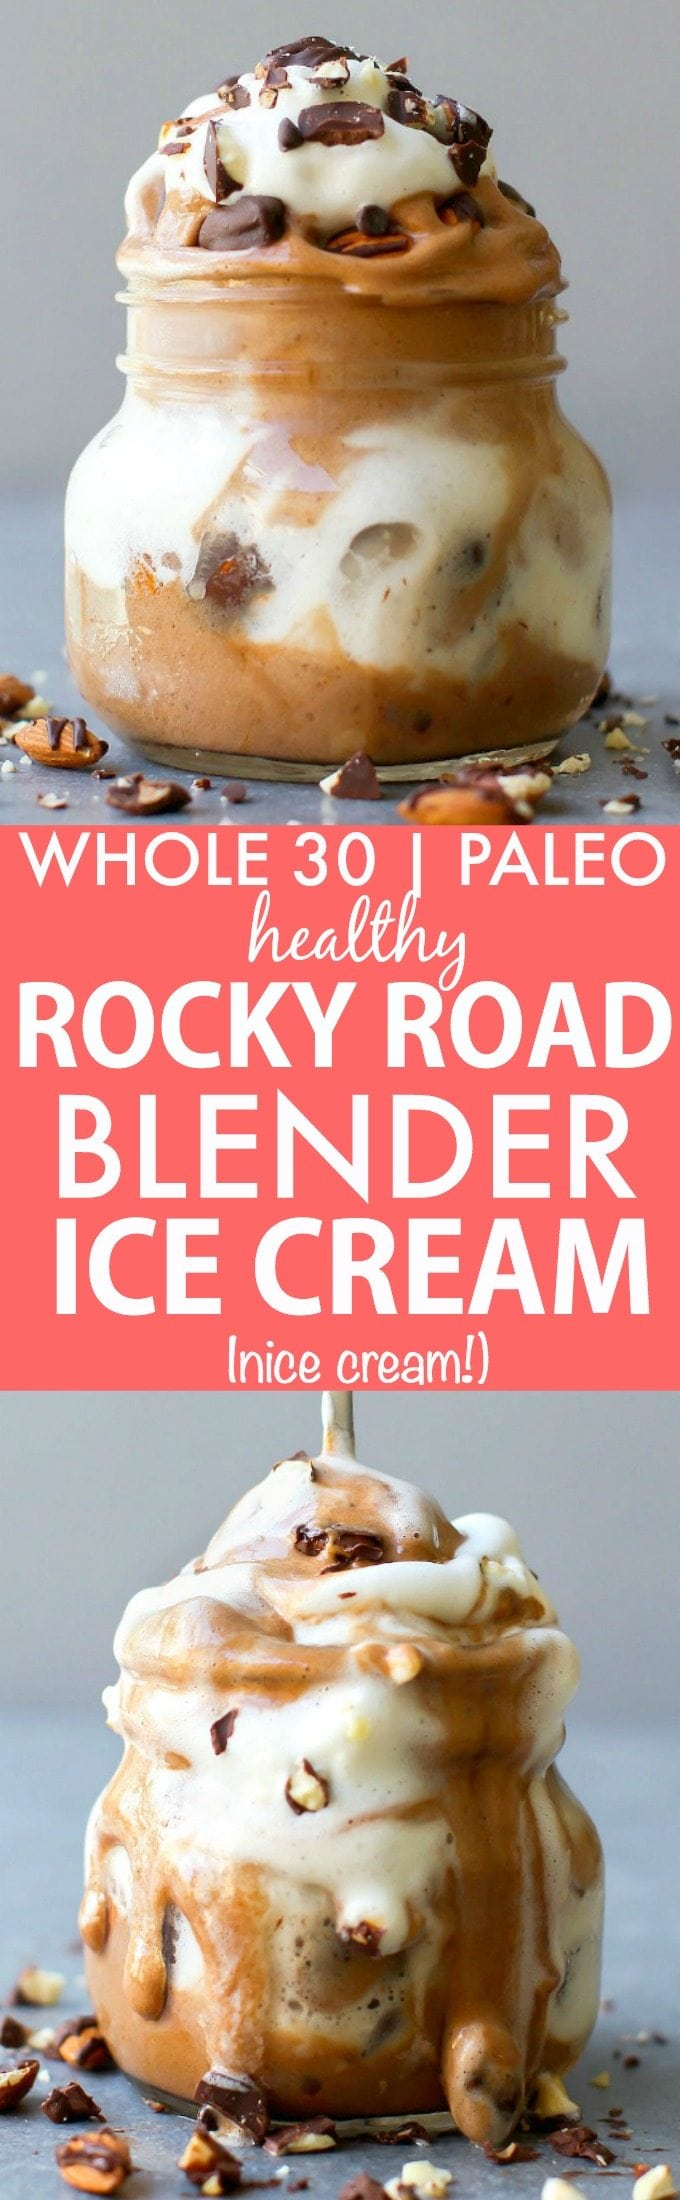 Clean Eating Blender Rocky Road Ice Cream (Whole 30, Paleo, V, GF)- Whole30 friendly fruit based nice cream made in a blender- NO cream or butter and completely dairy free and sugar free! {vegan, gluten free, paleo recipe}- thebigmansworld.com